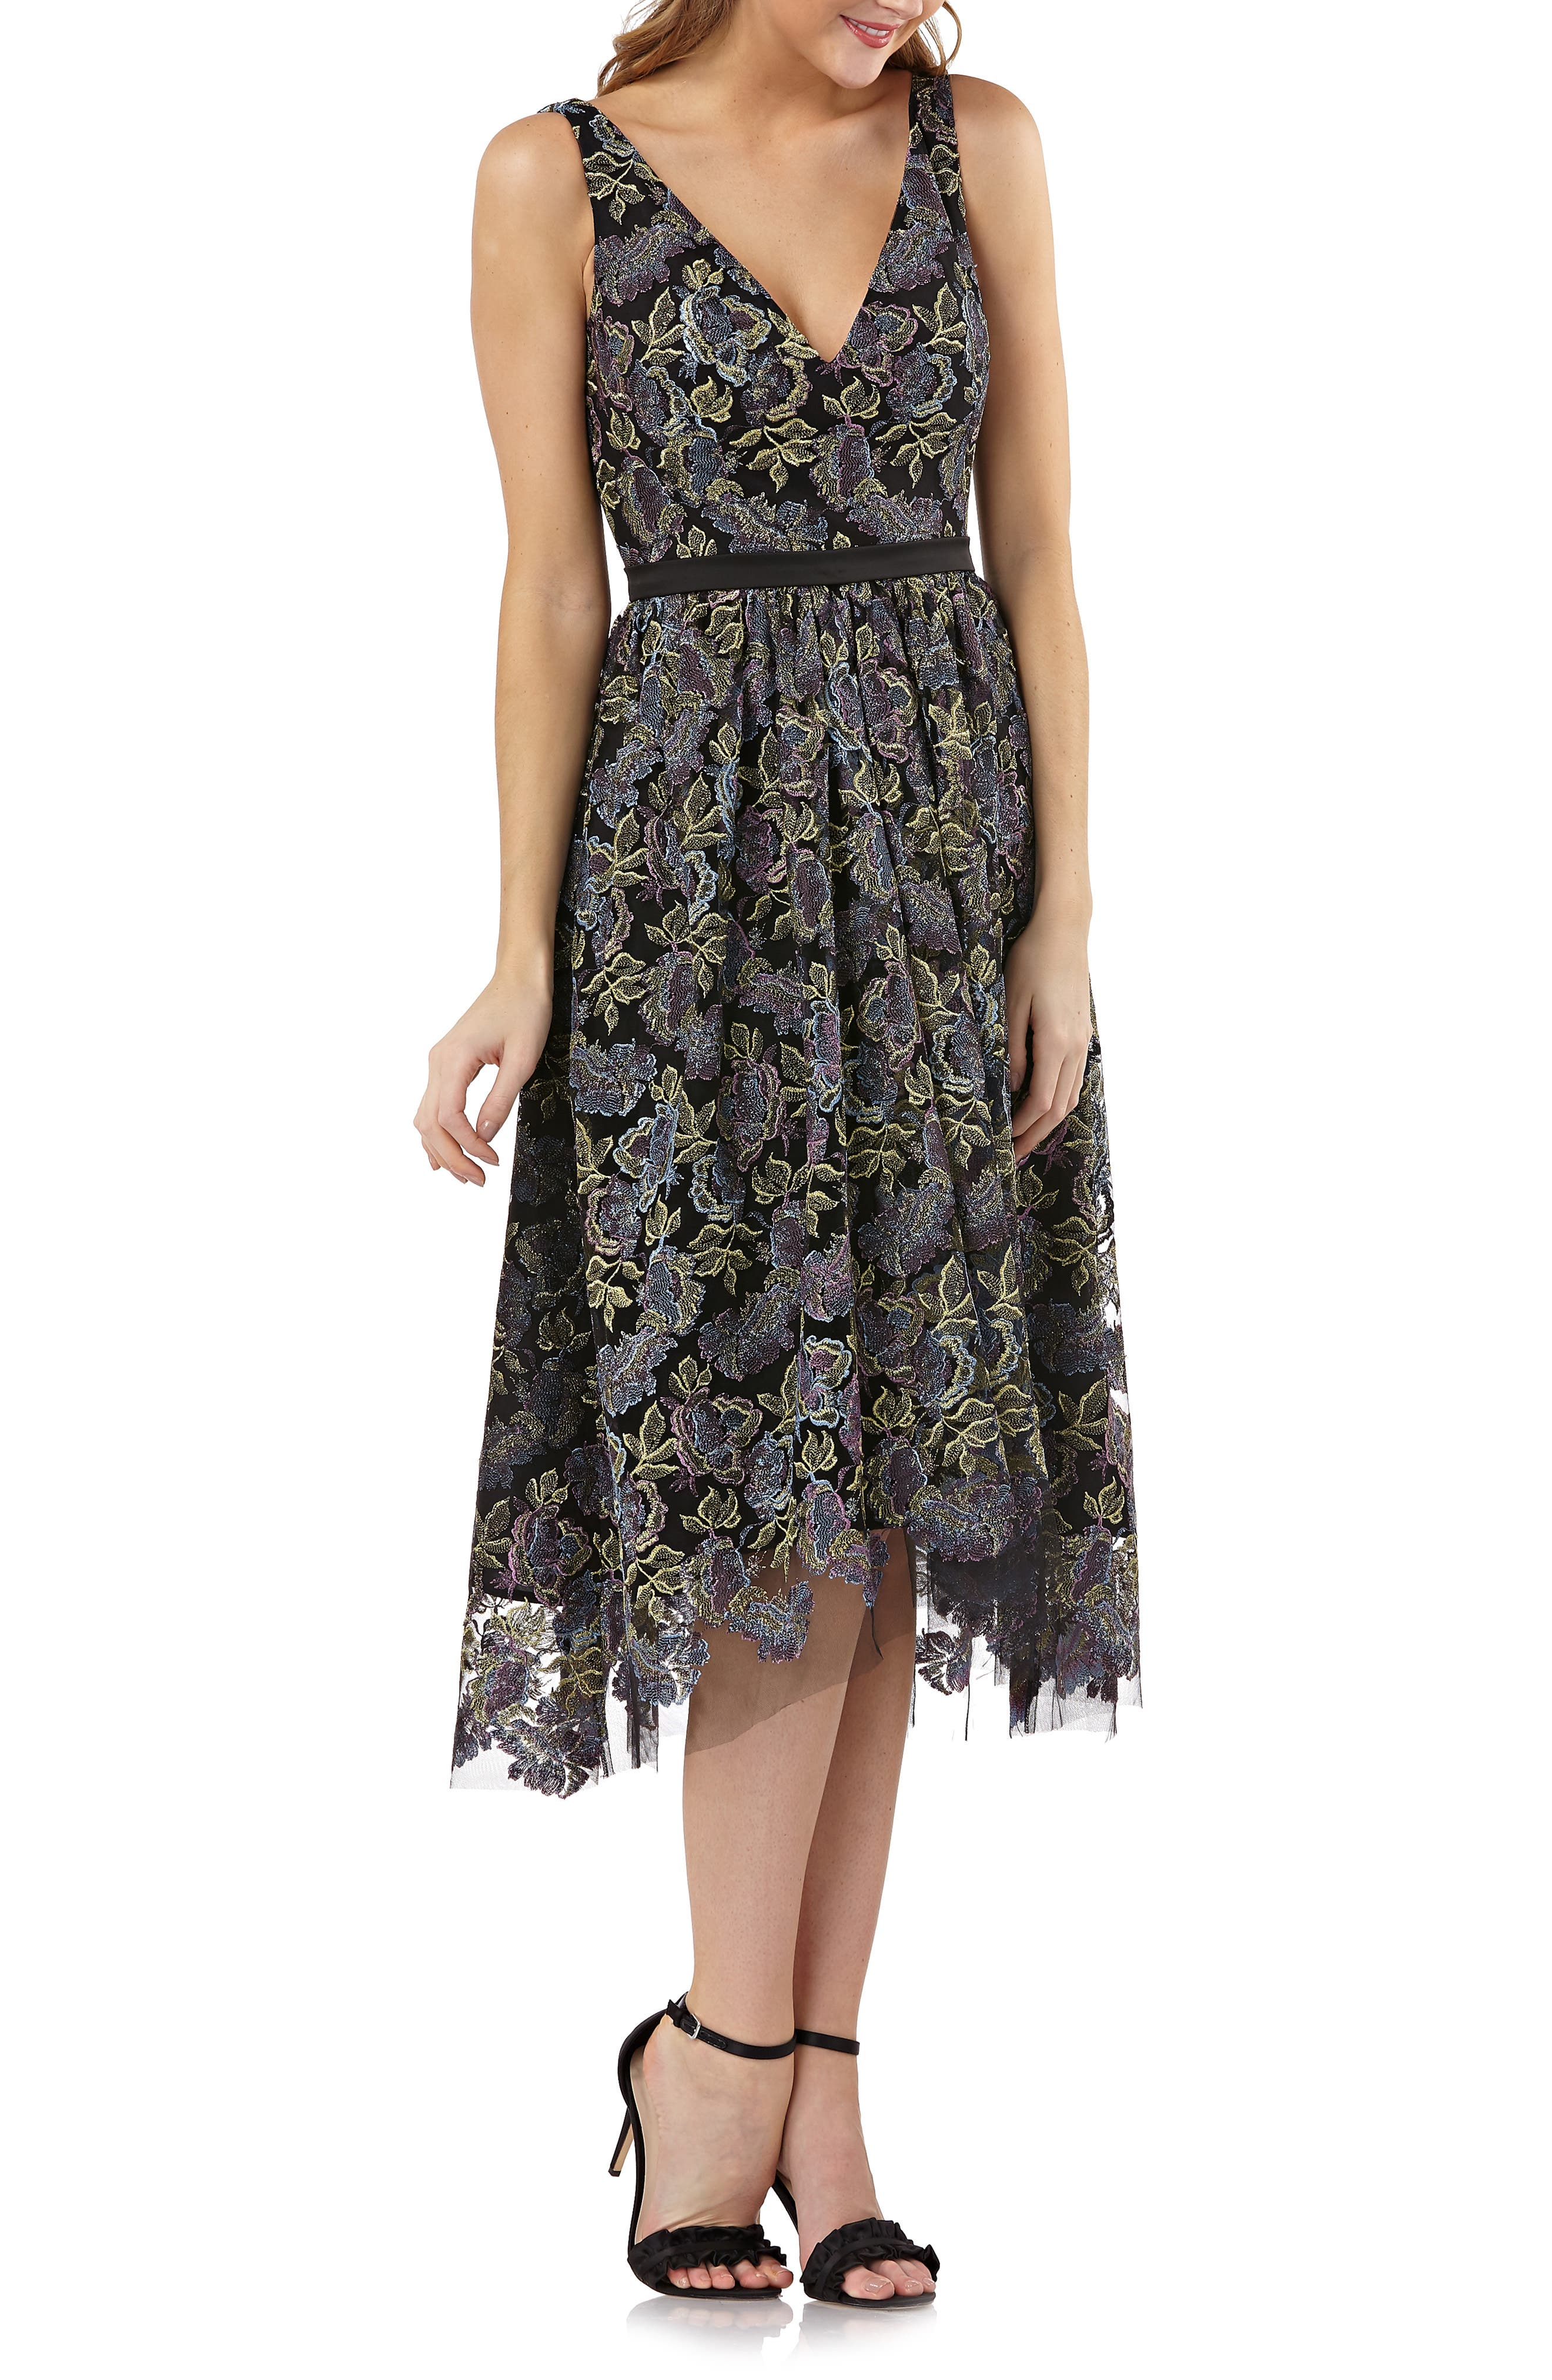 Js Collections Metallic Floral Dress, Black